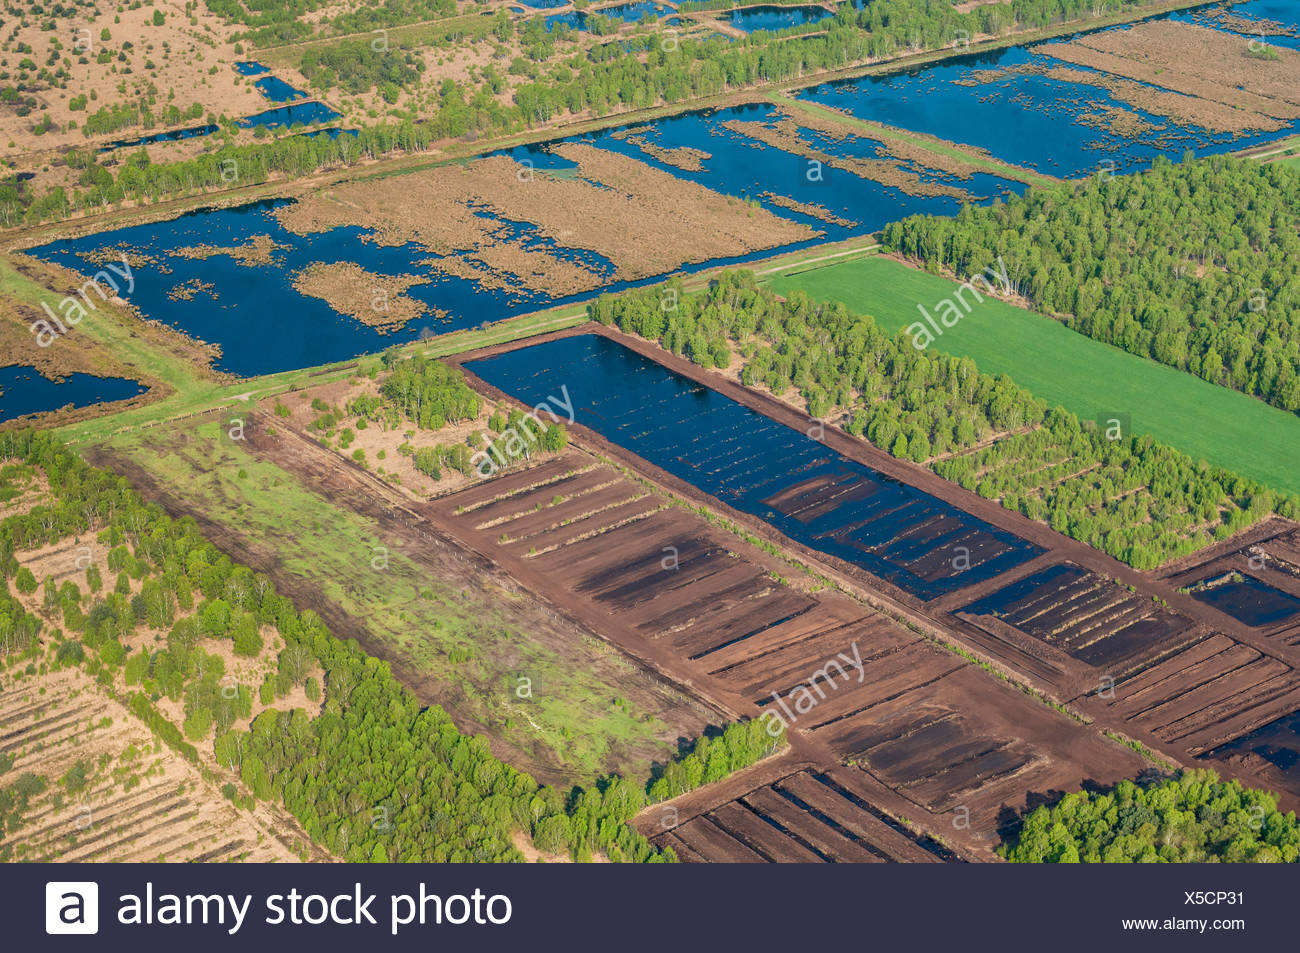 Water Reclamation Area Stock Photos Amp Water Reclamation Area Stock Images